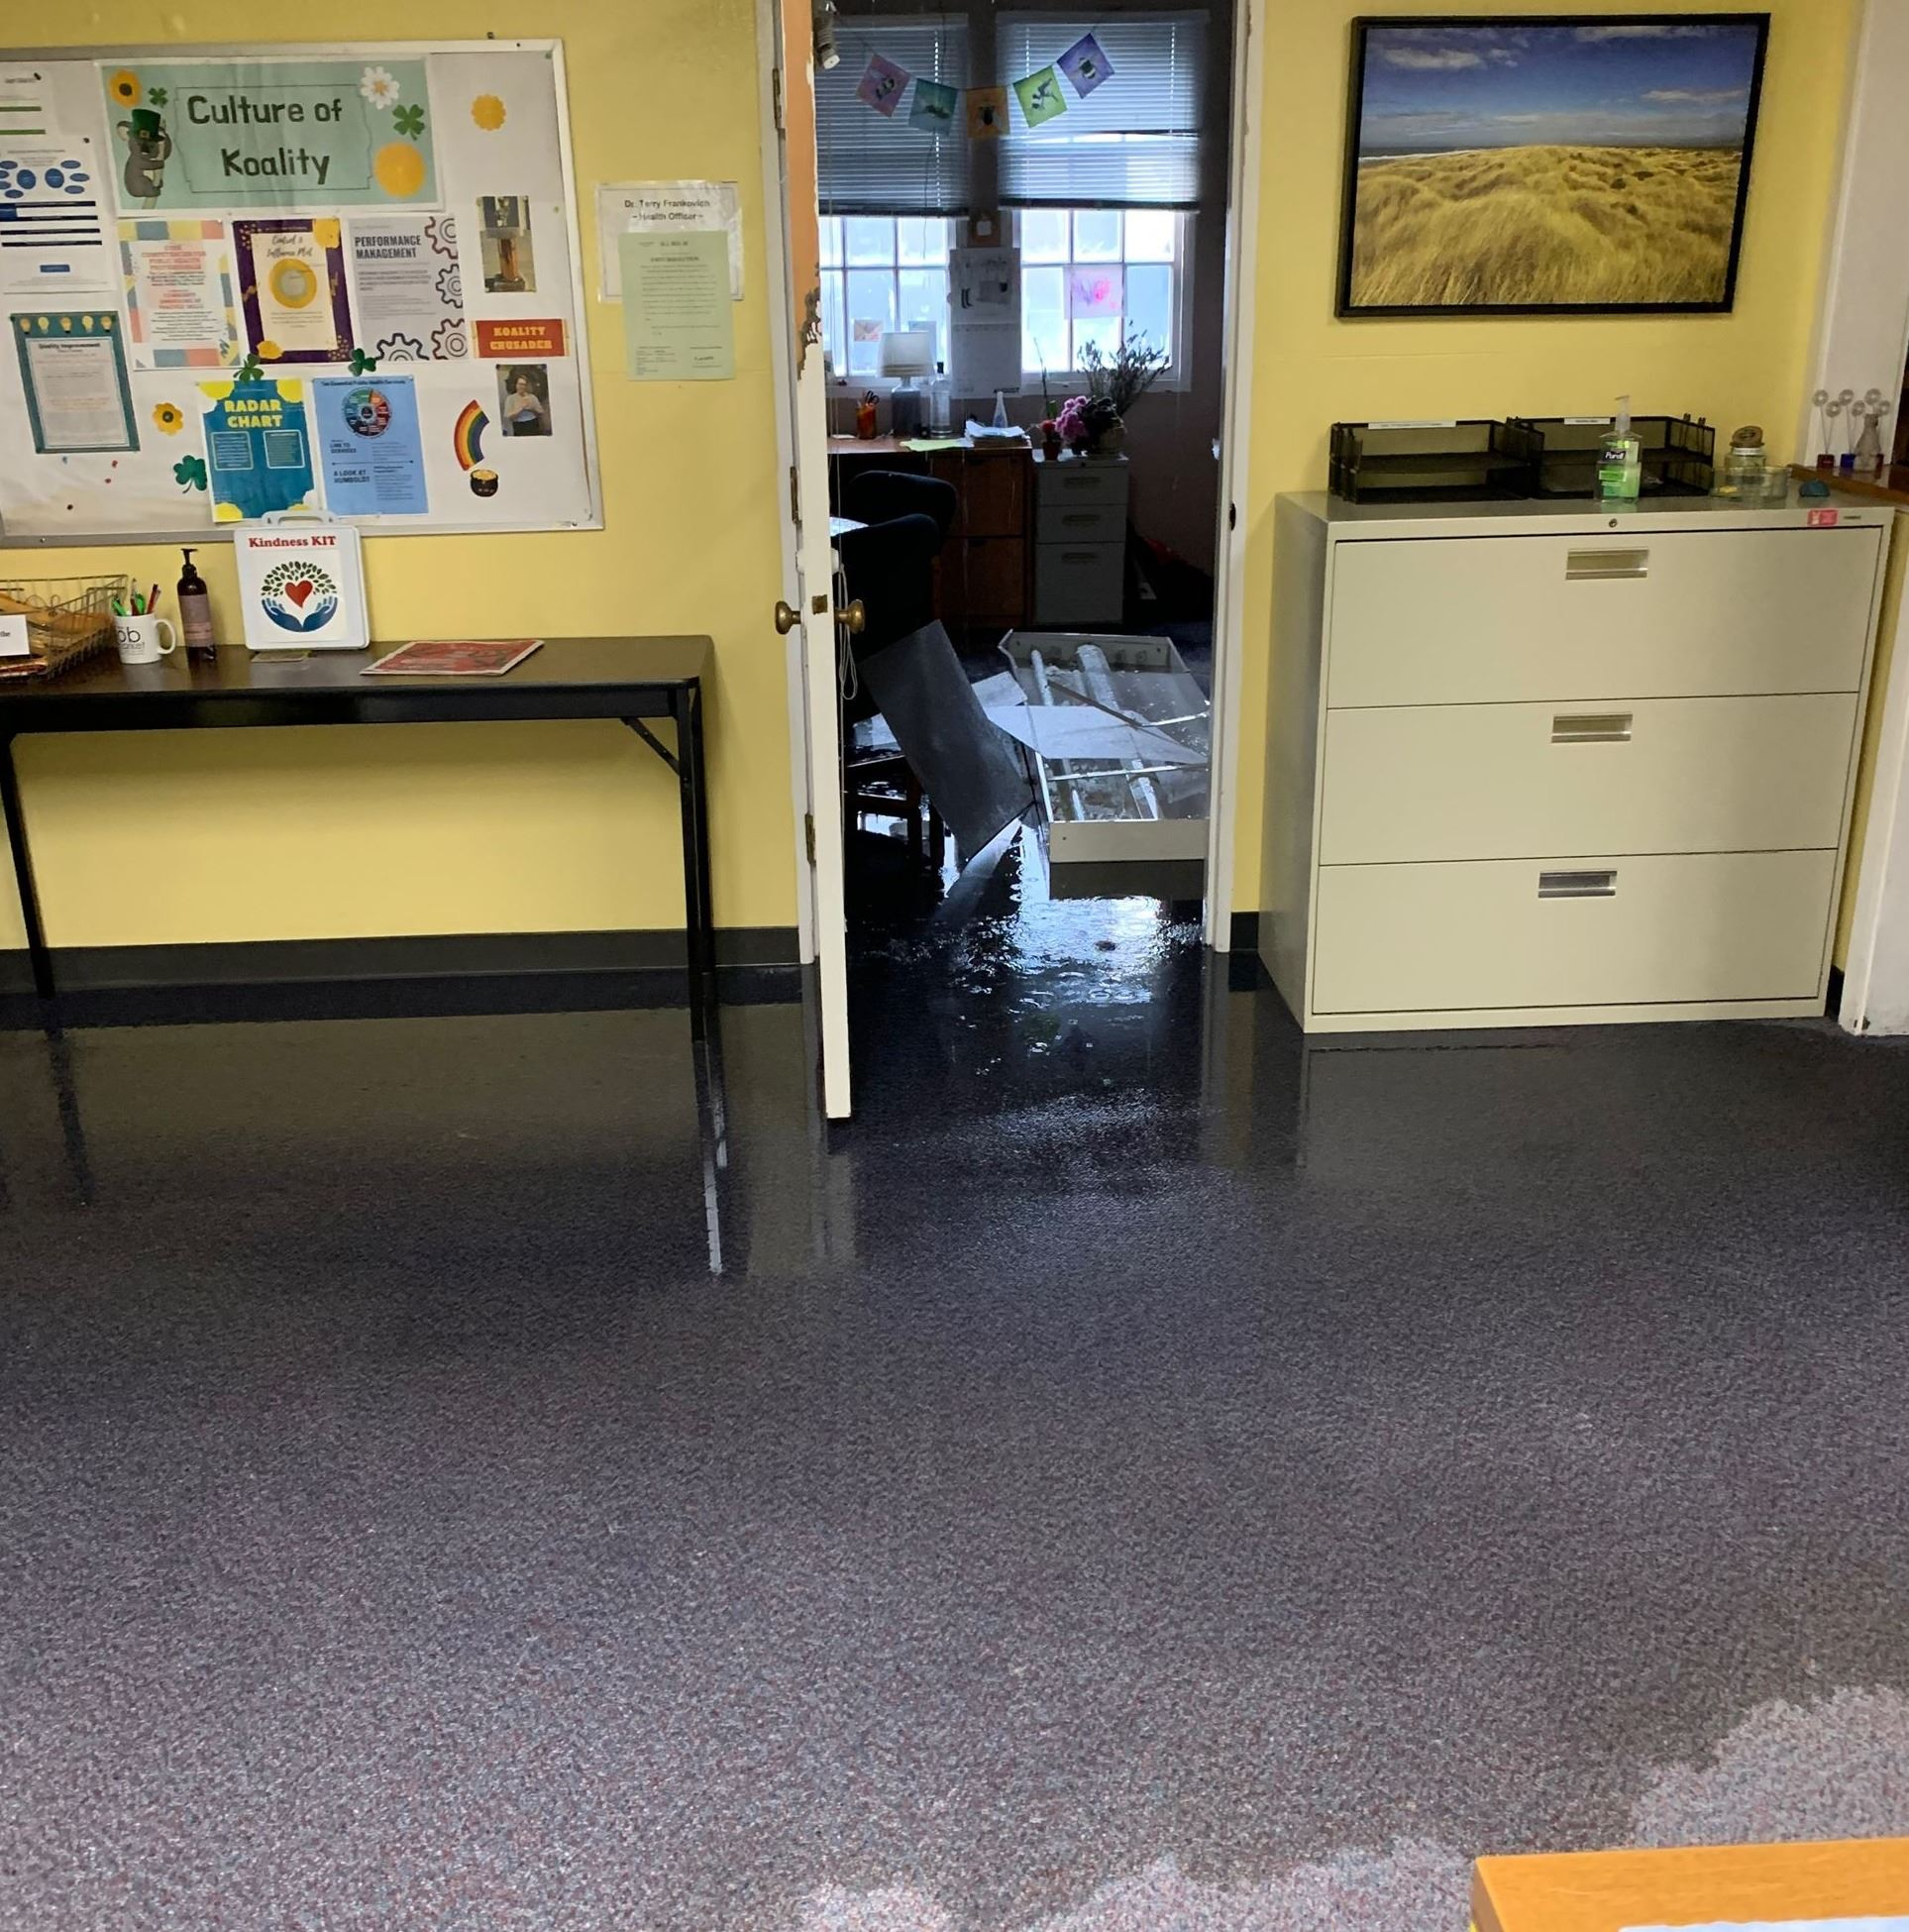 Debris, flooded carpet and room of County Health Officer's office.